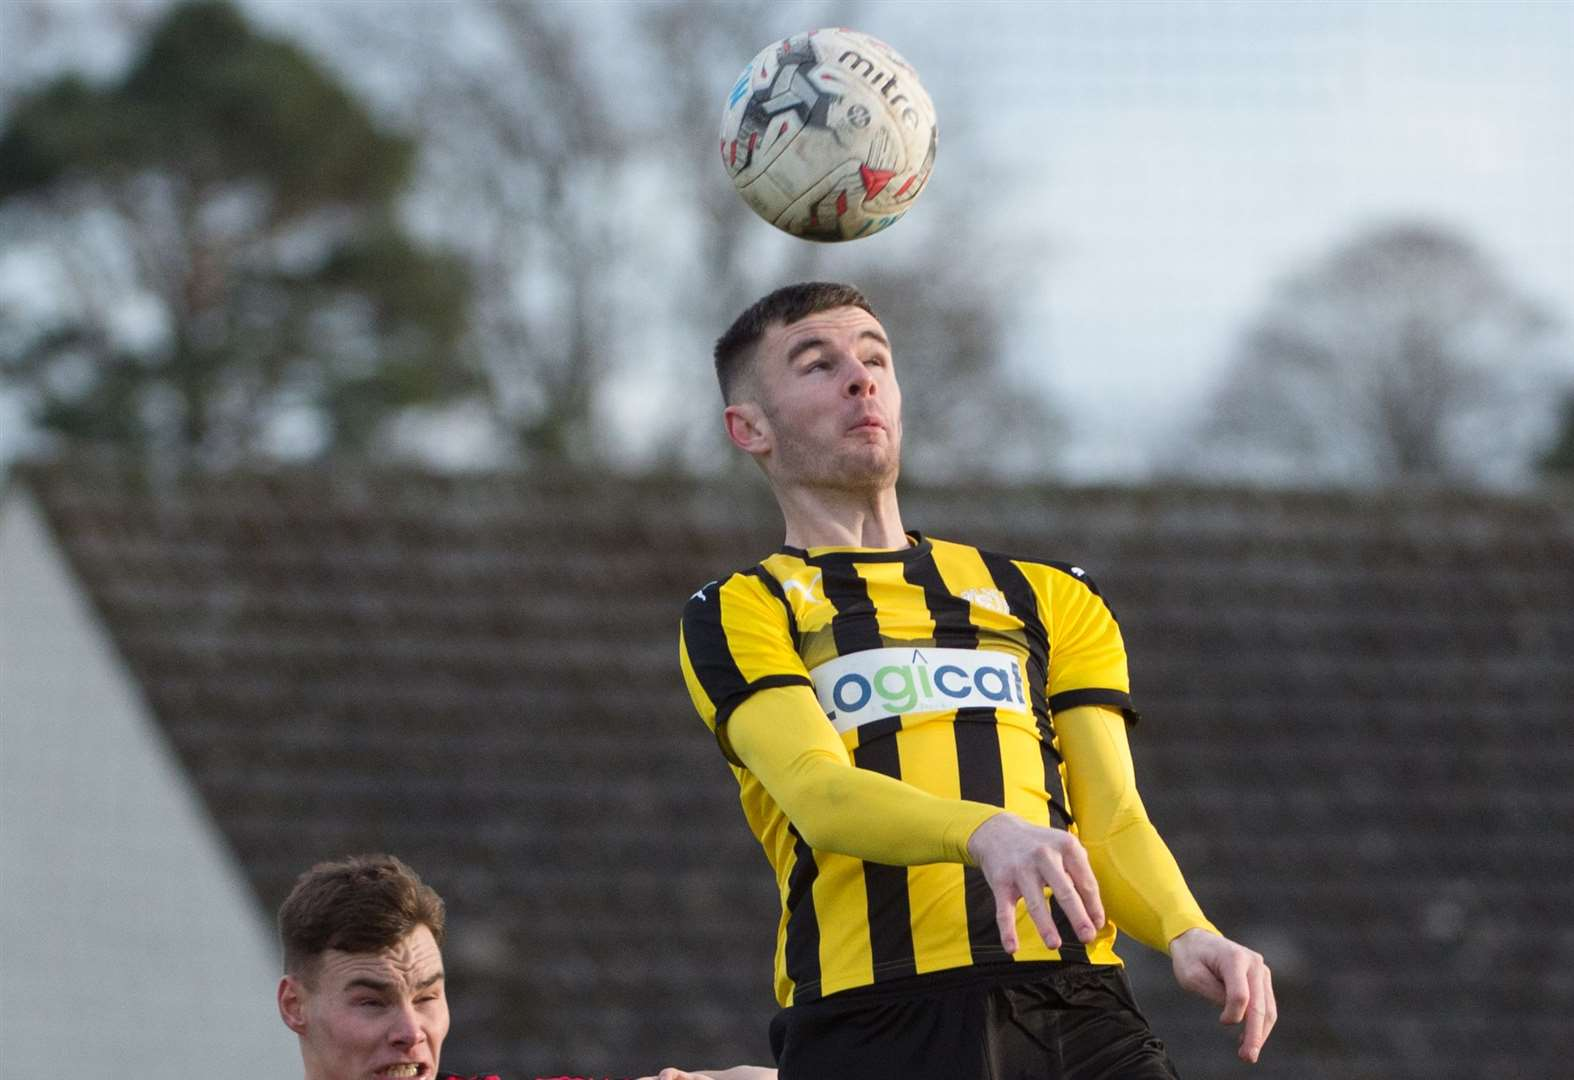 Nairn County go down to league leaders Buckie Thistle